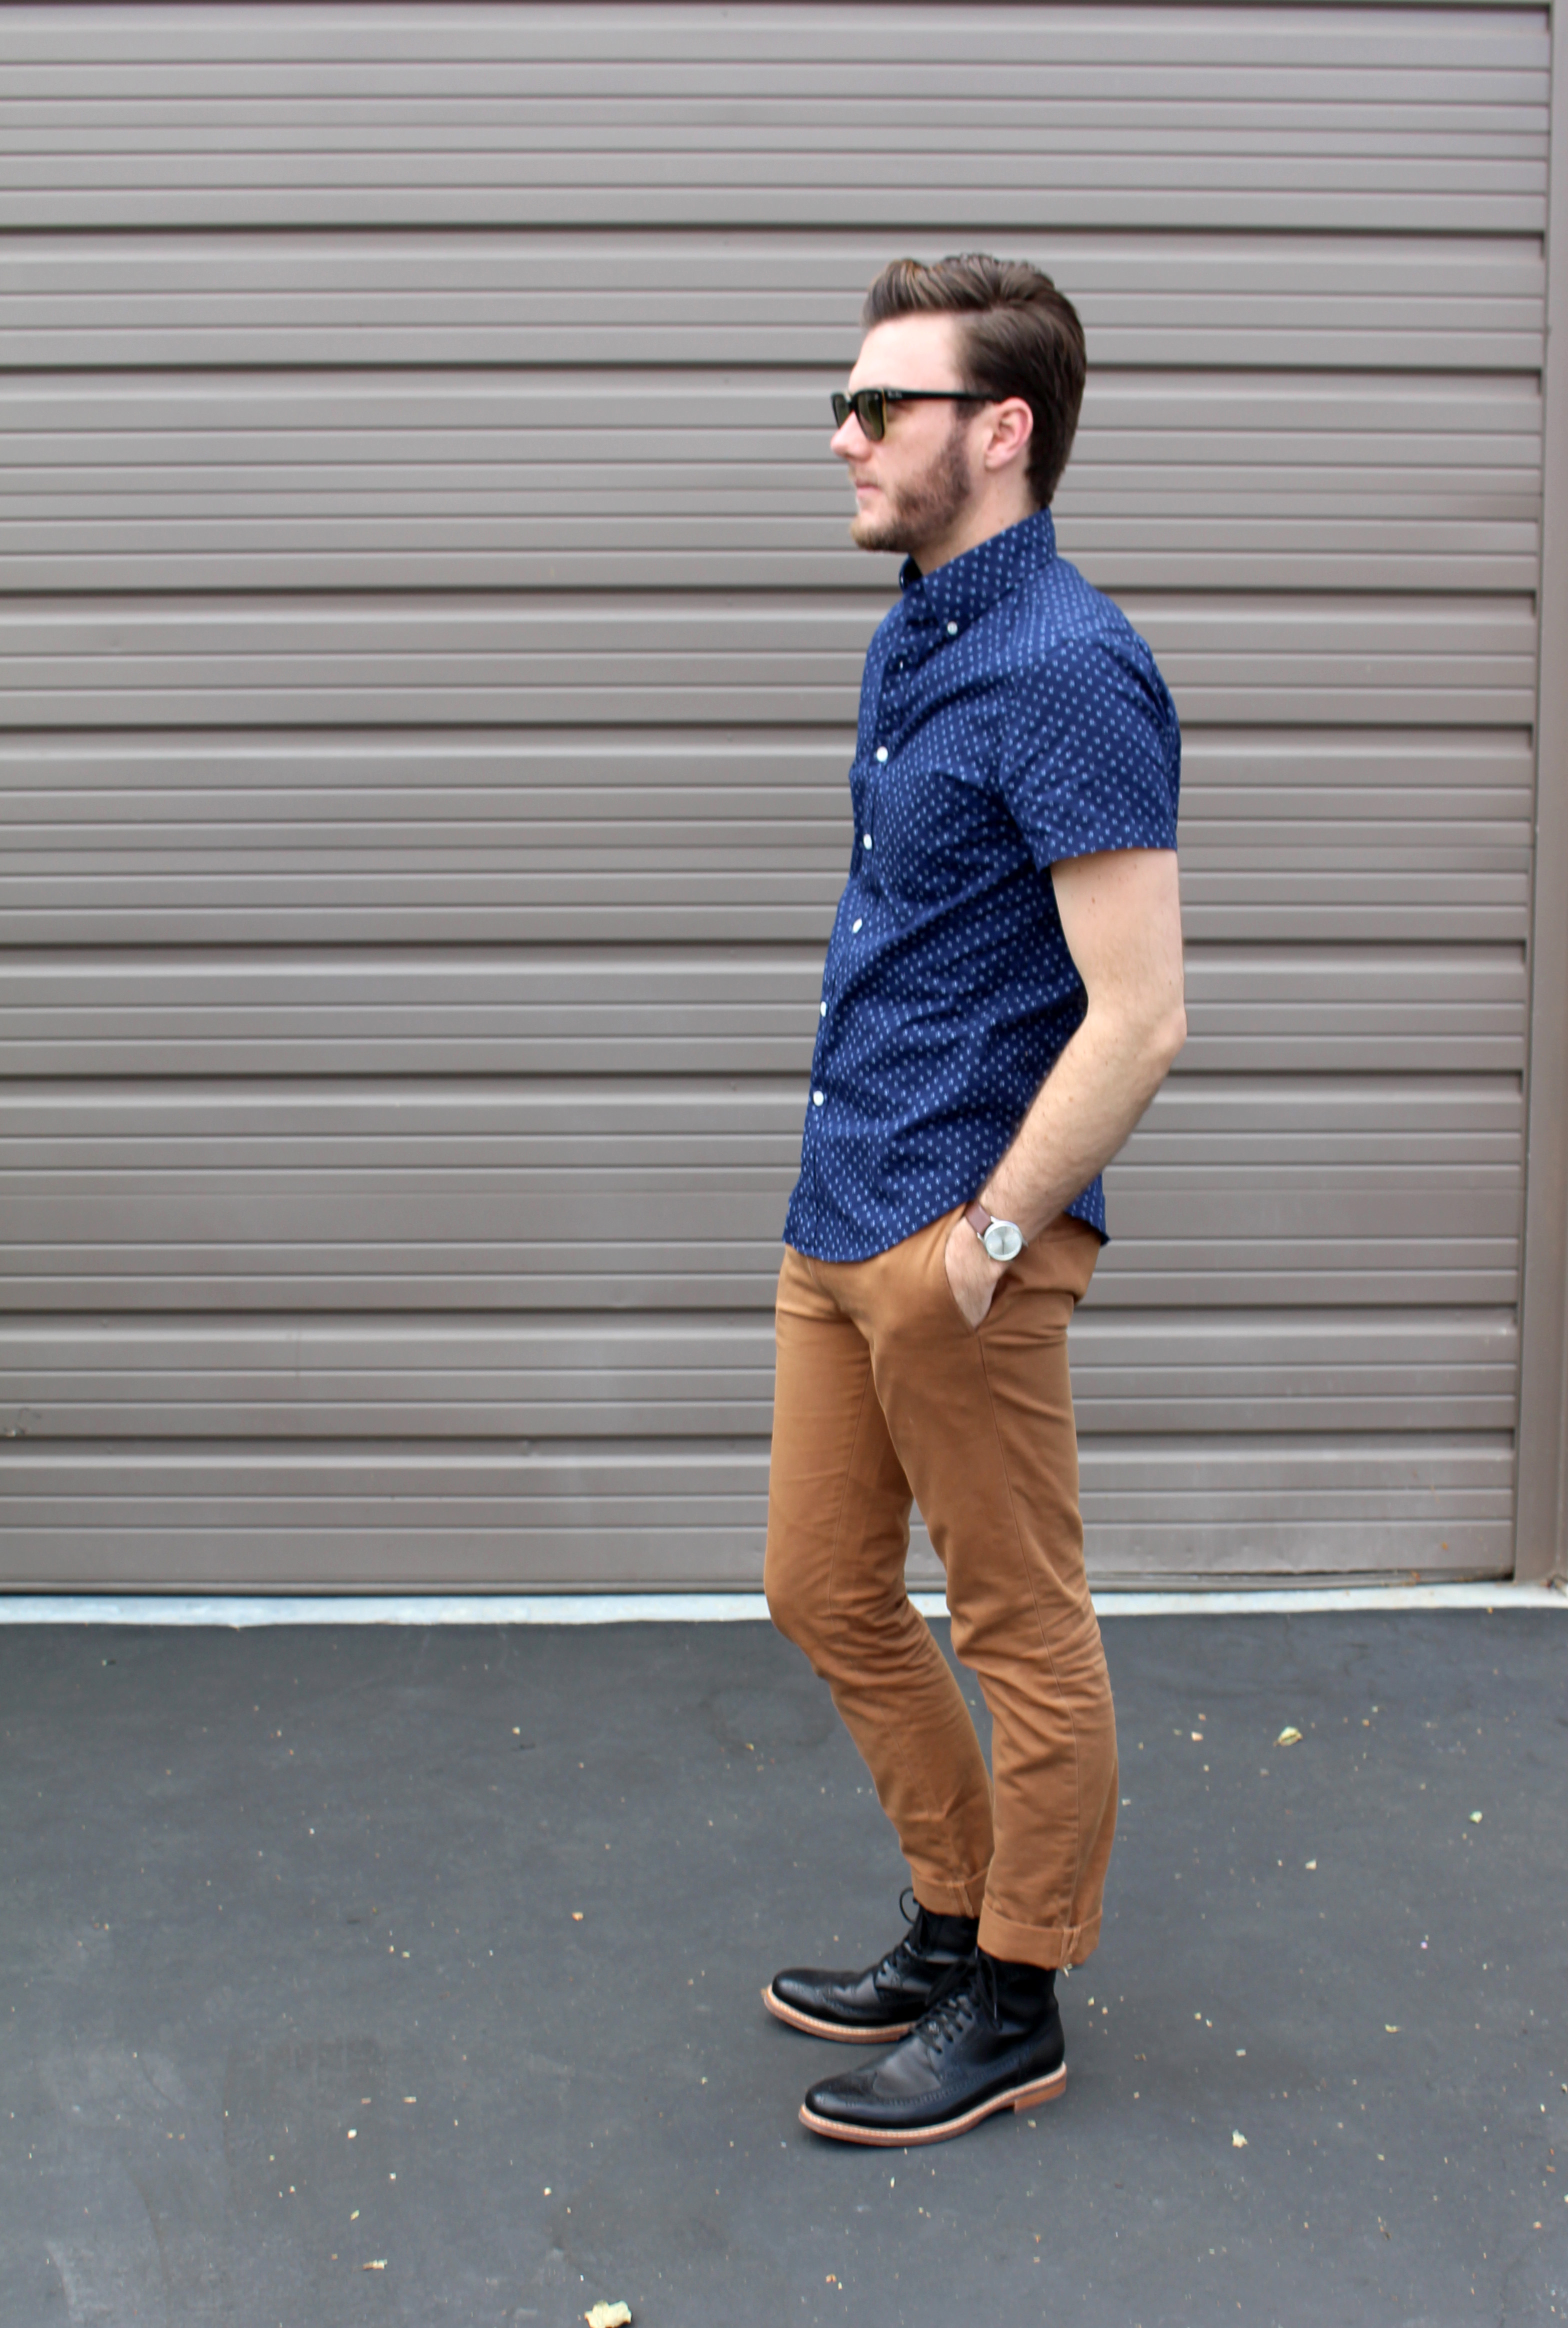 Black Boots Blue Printed Shirt 2